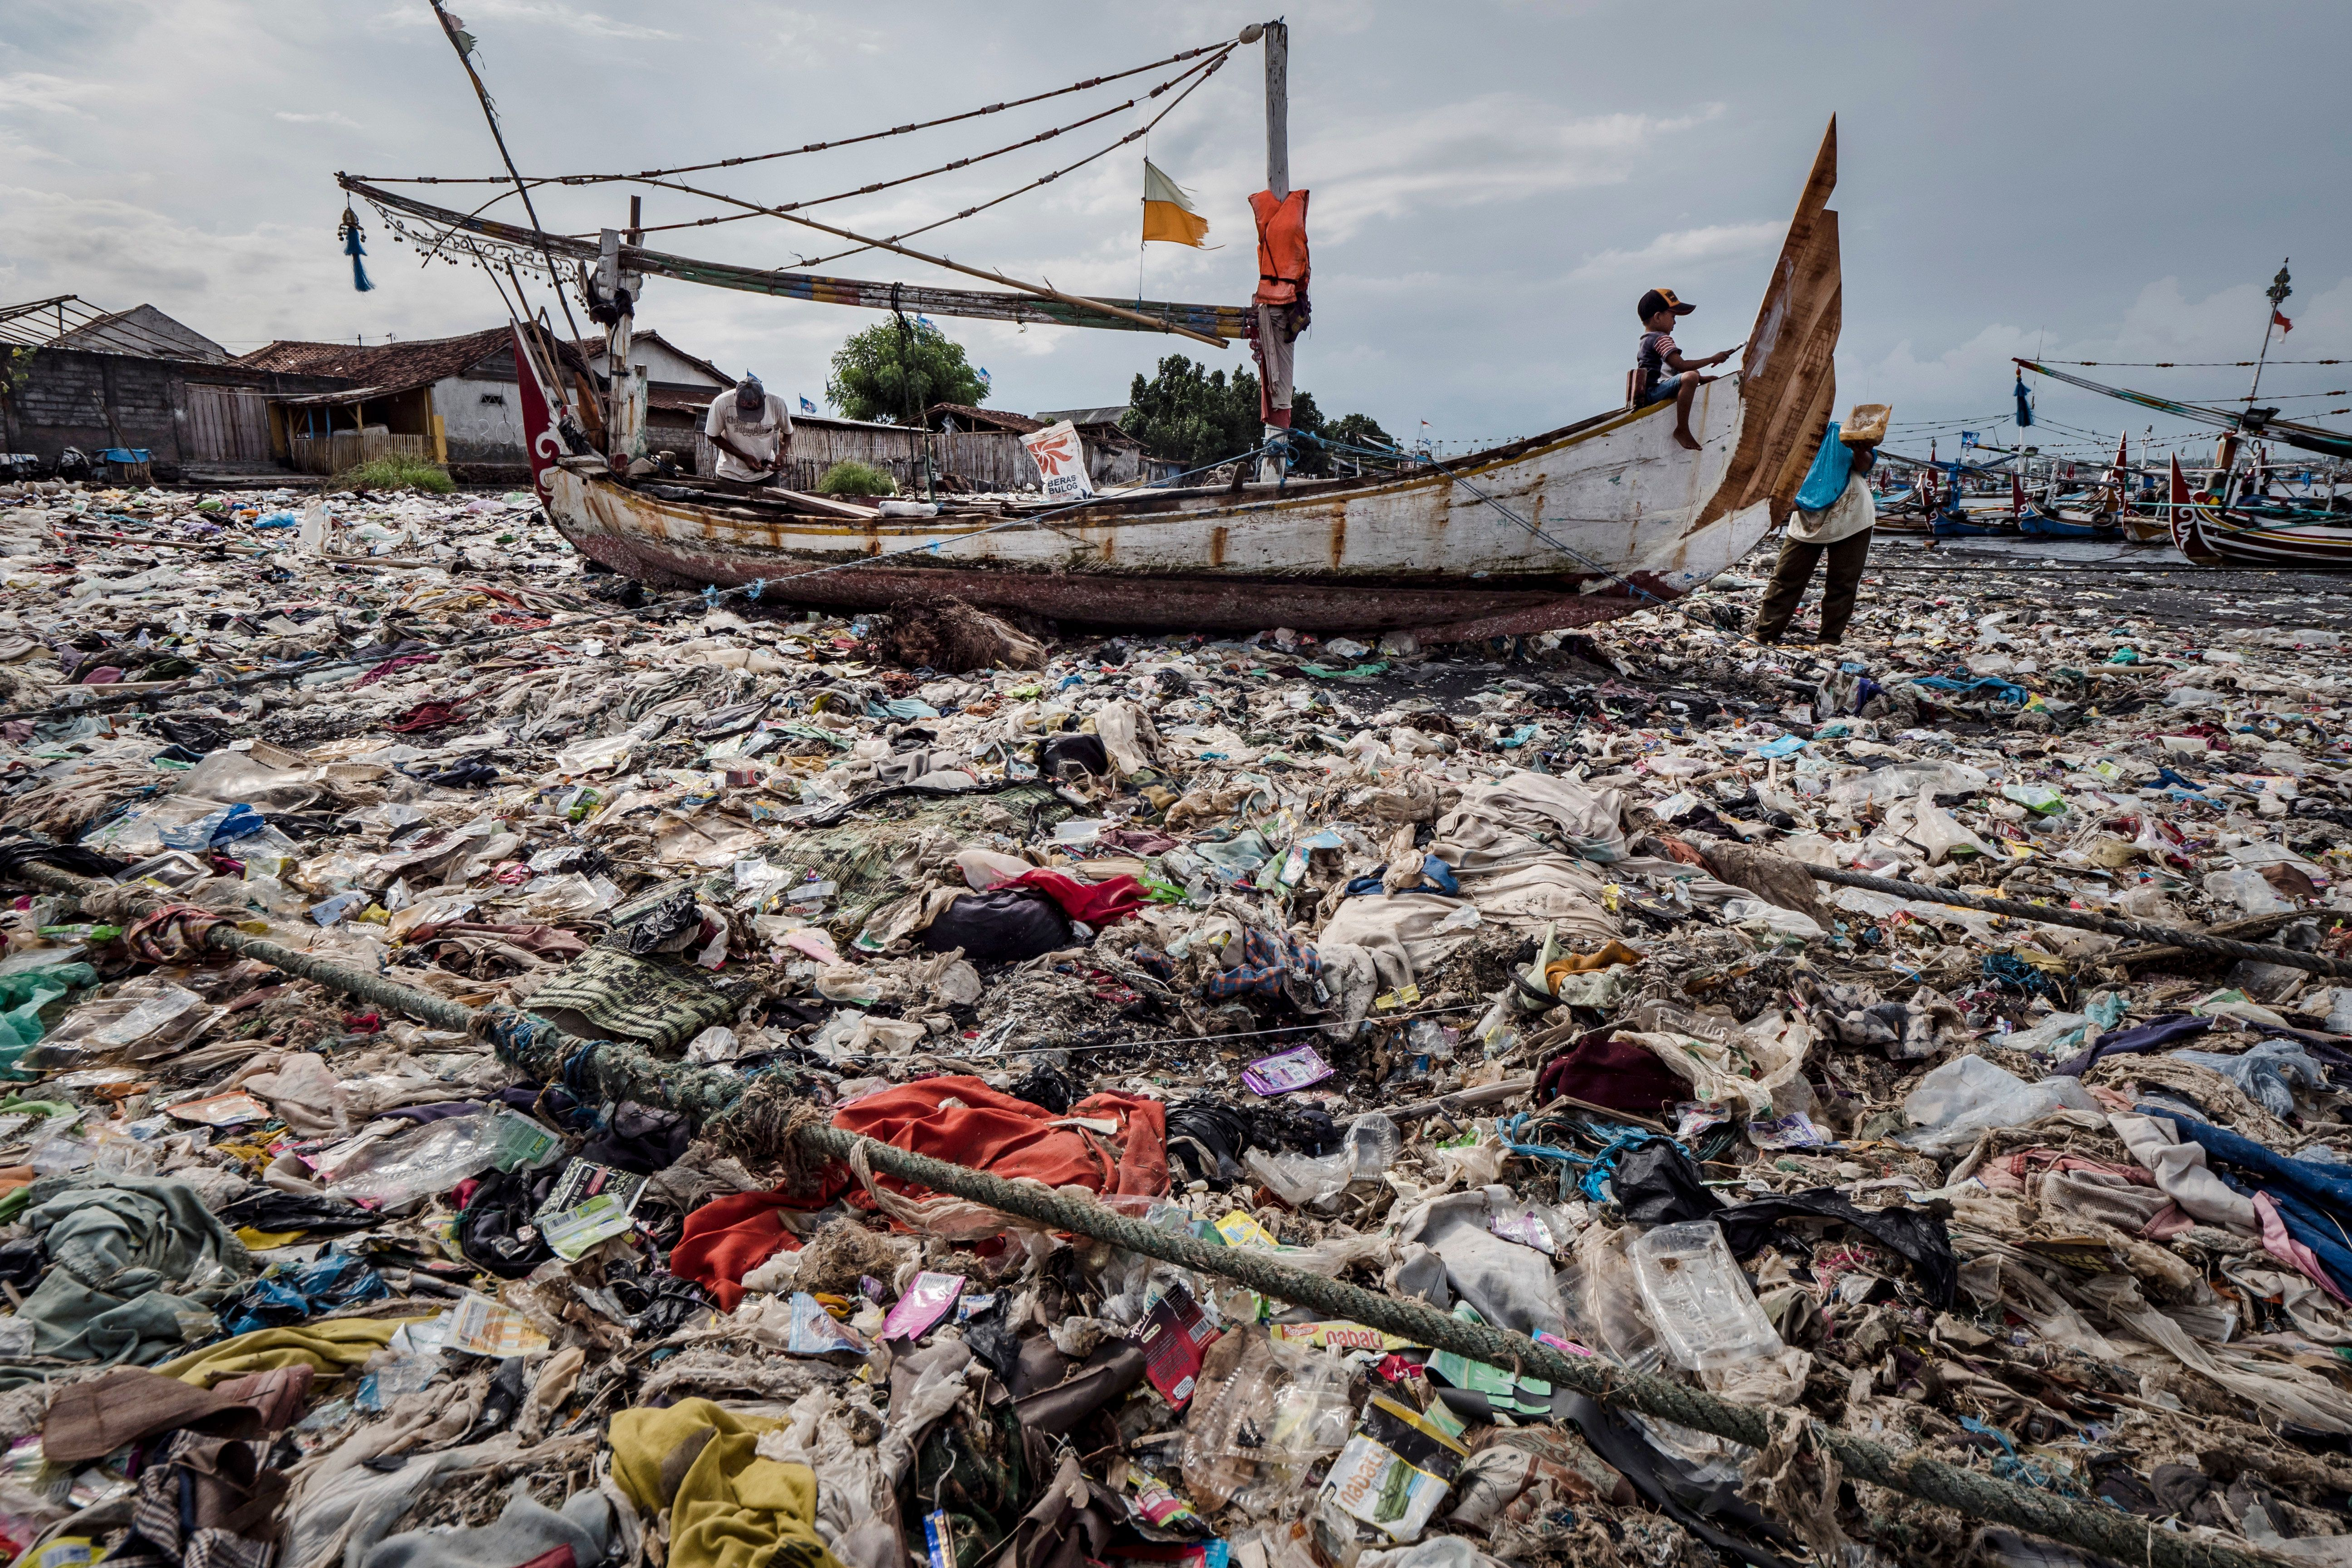 How A Picturesque Fishing Town Became Smothered In Trash